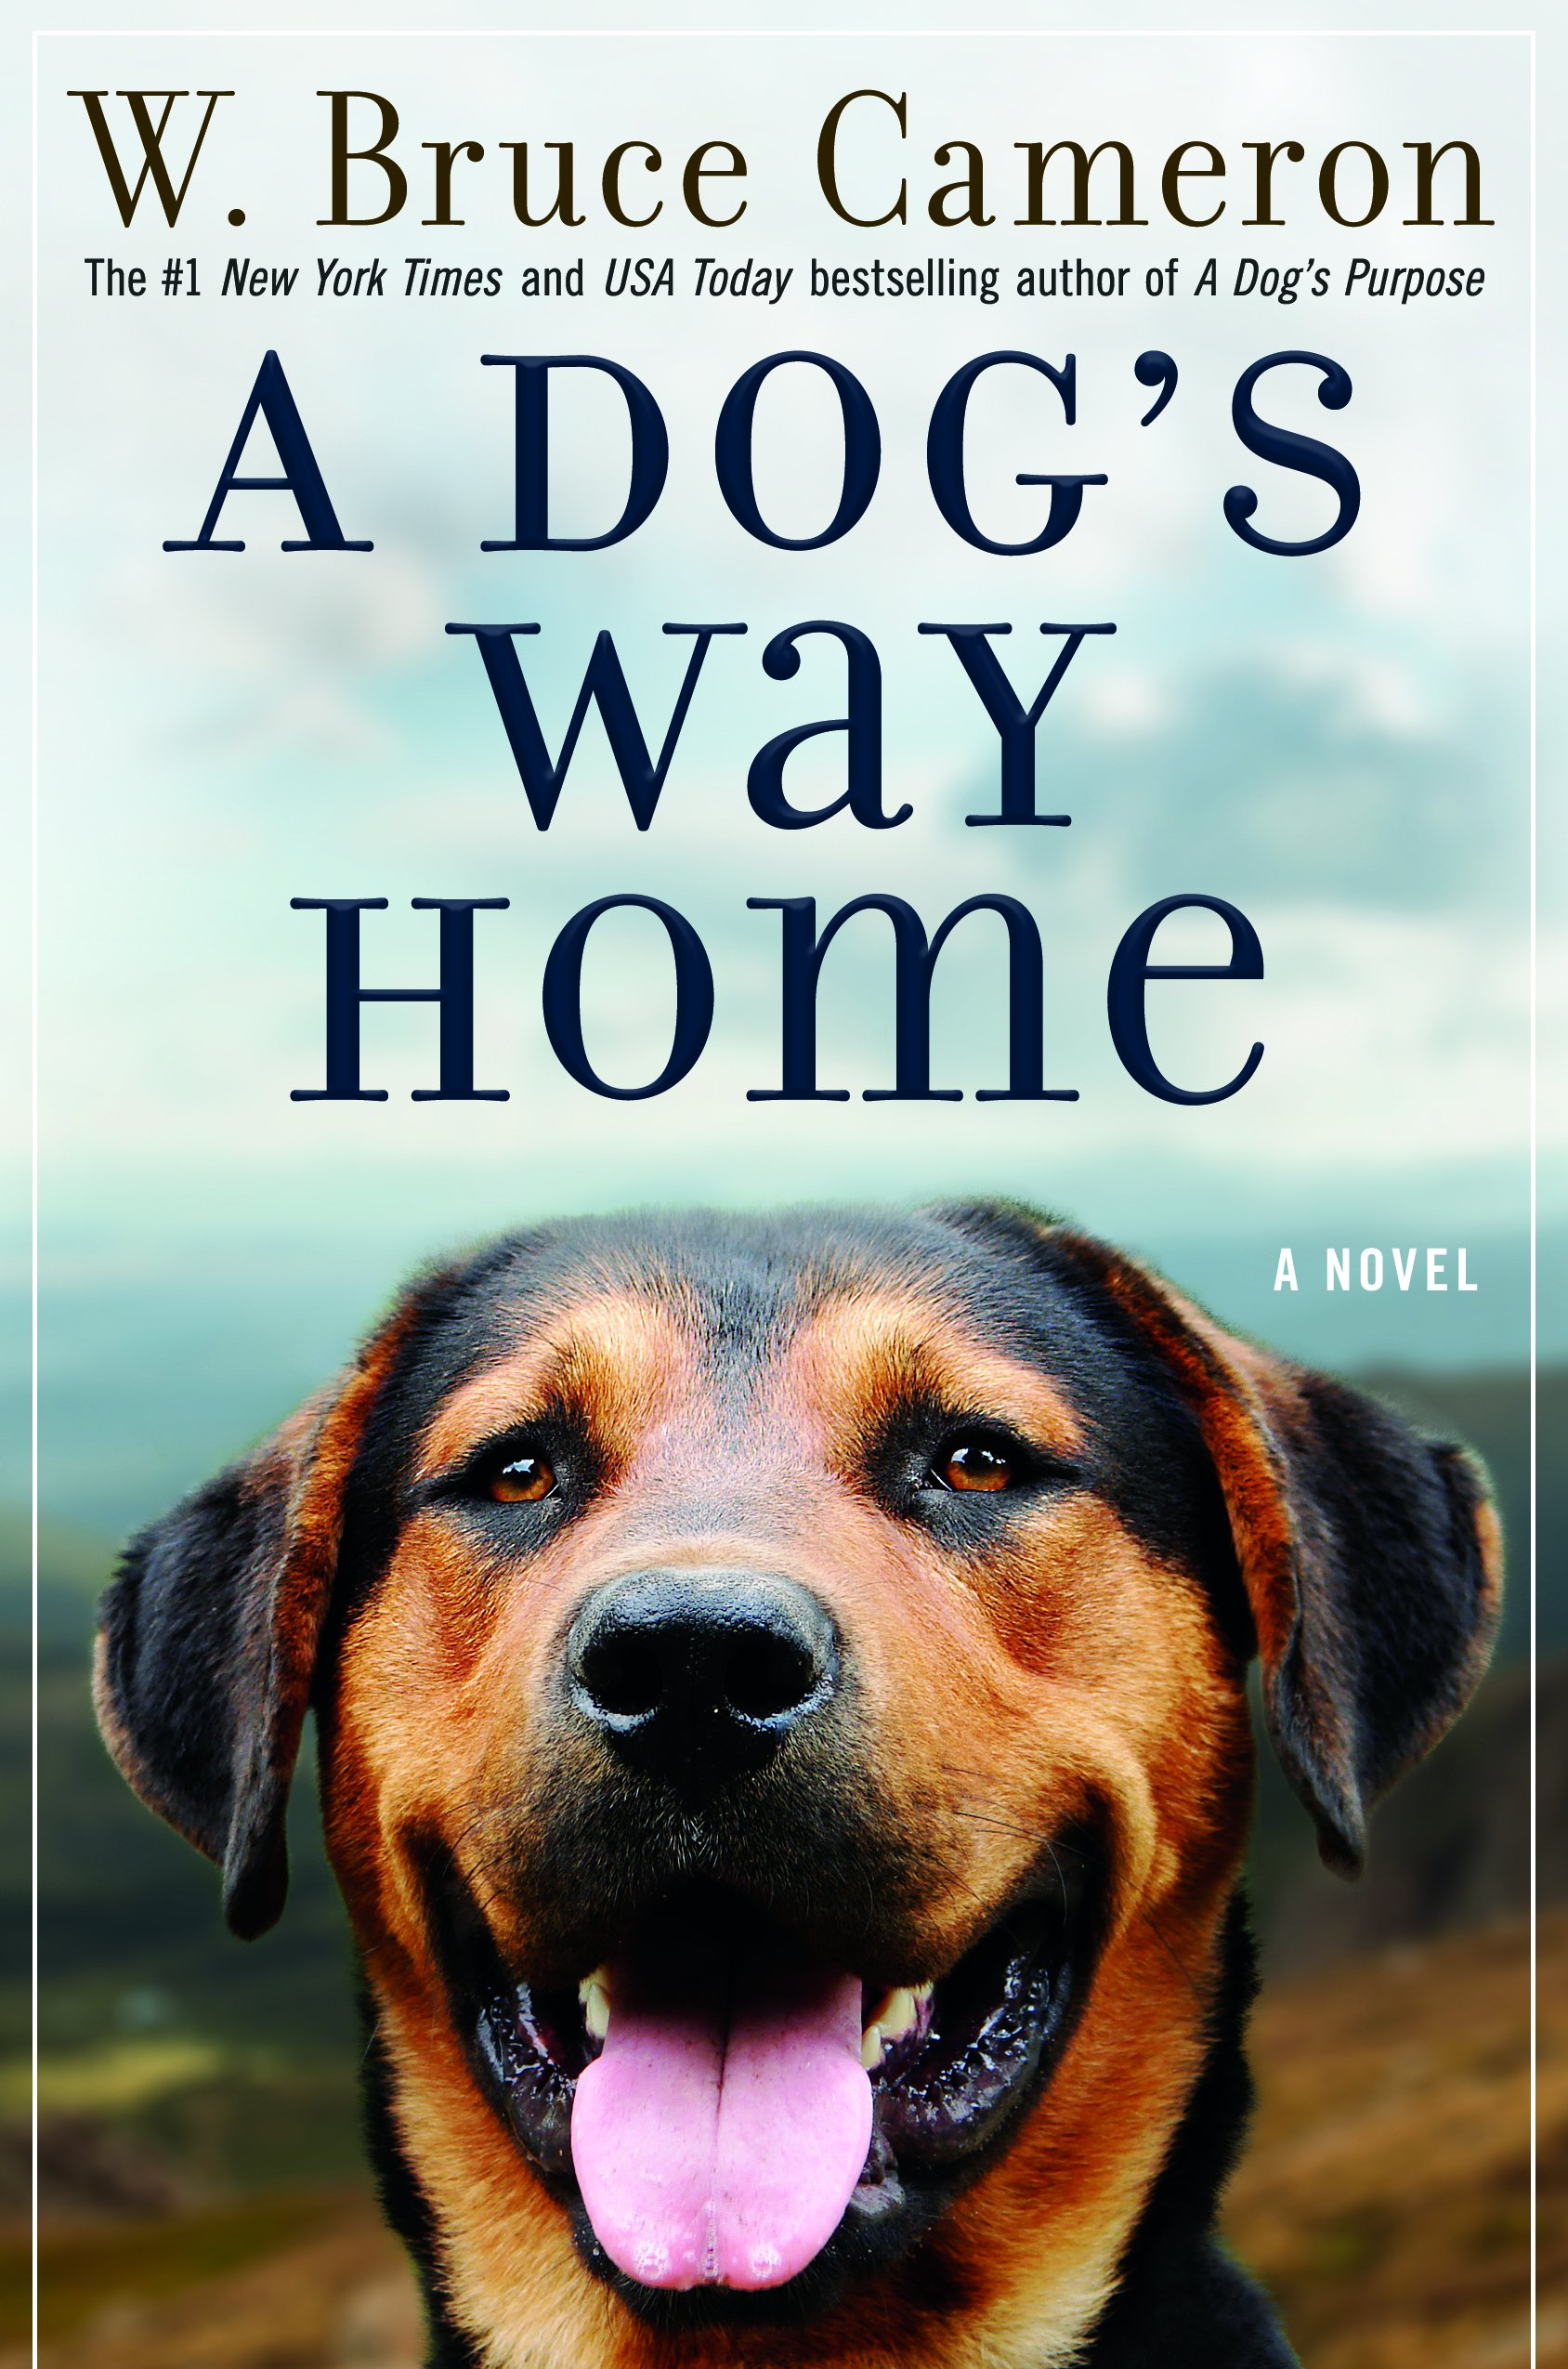 A Dog's Way Home